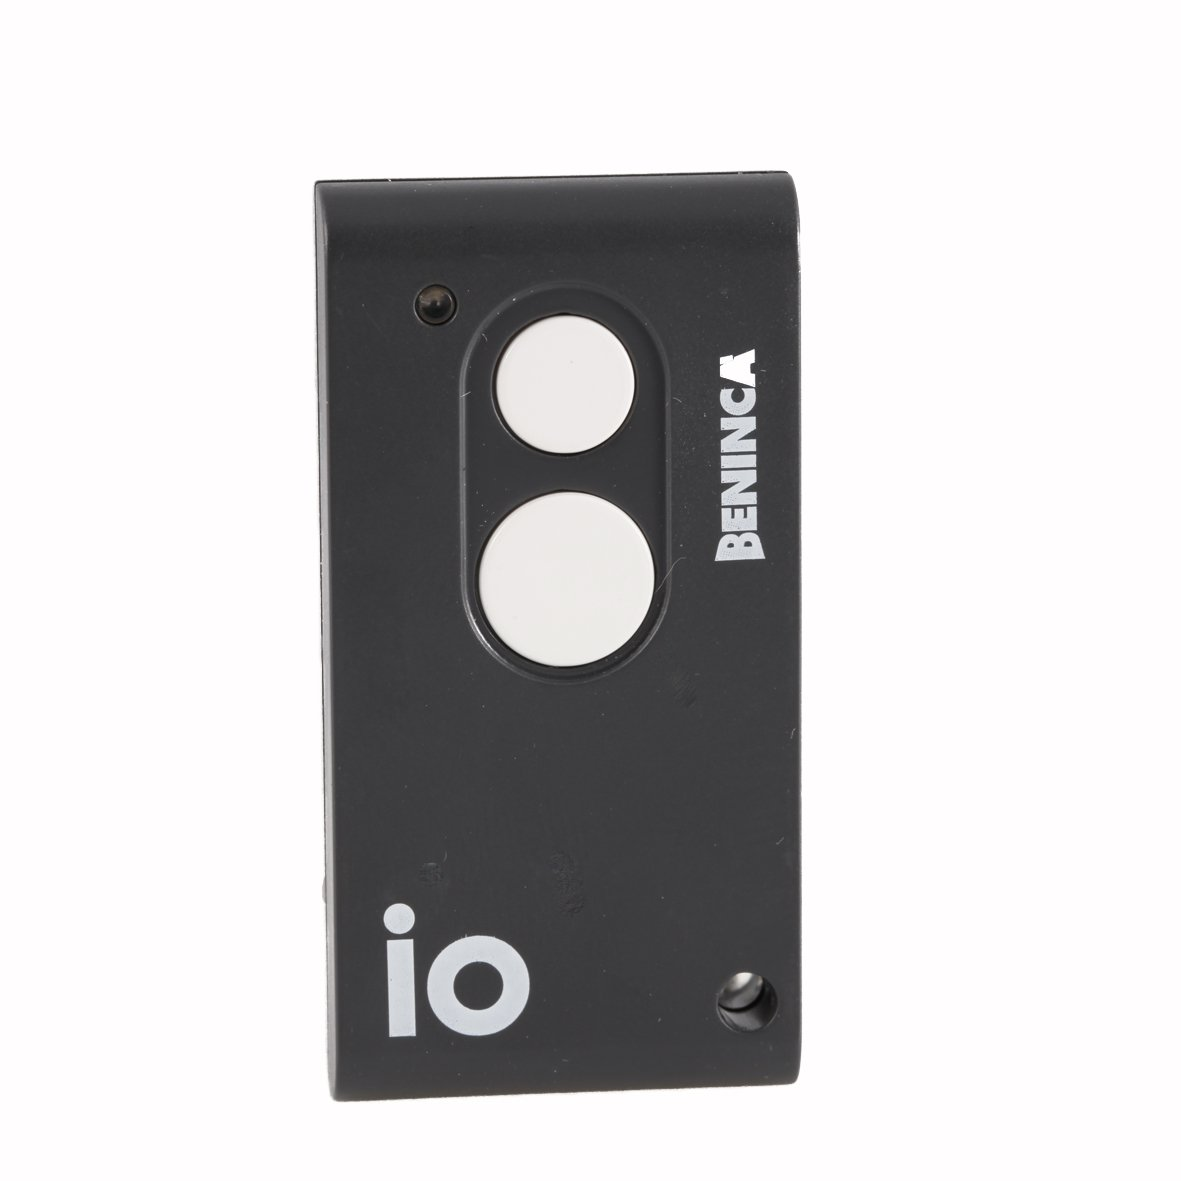 BENINCA IO BLACK Gate Remote